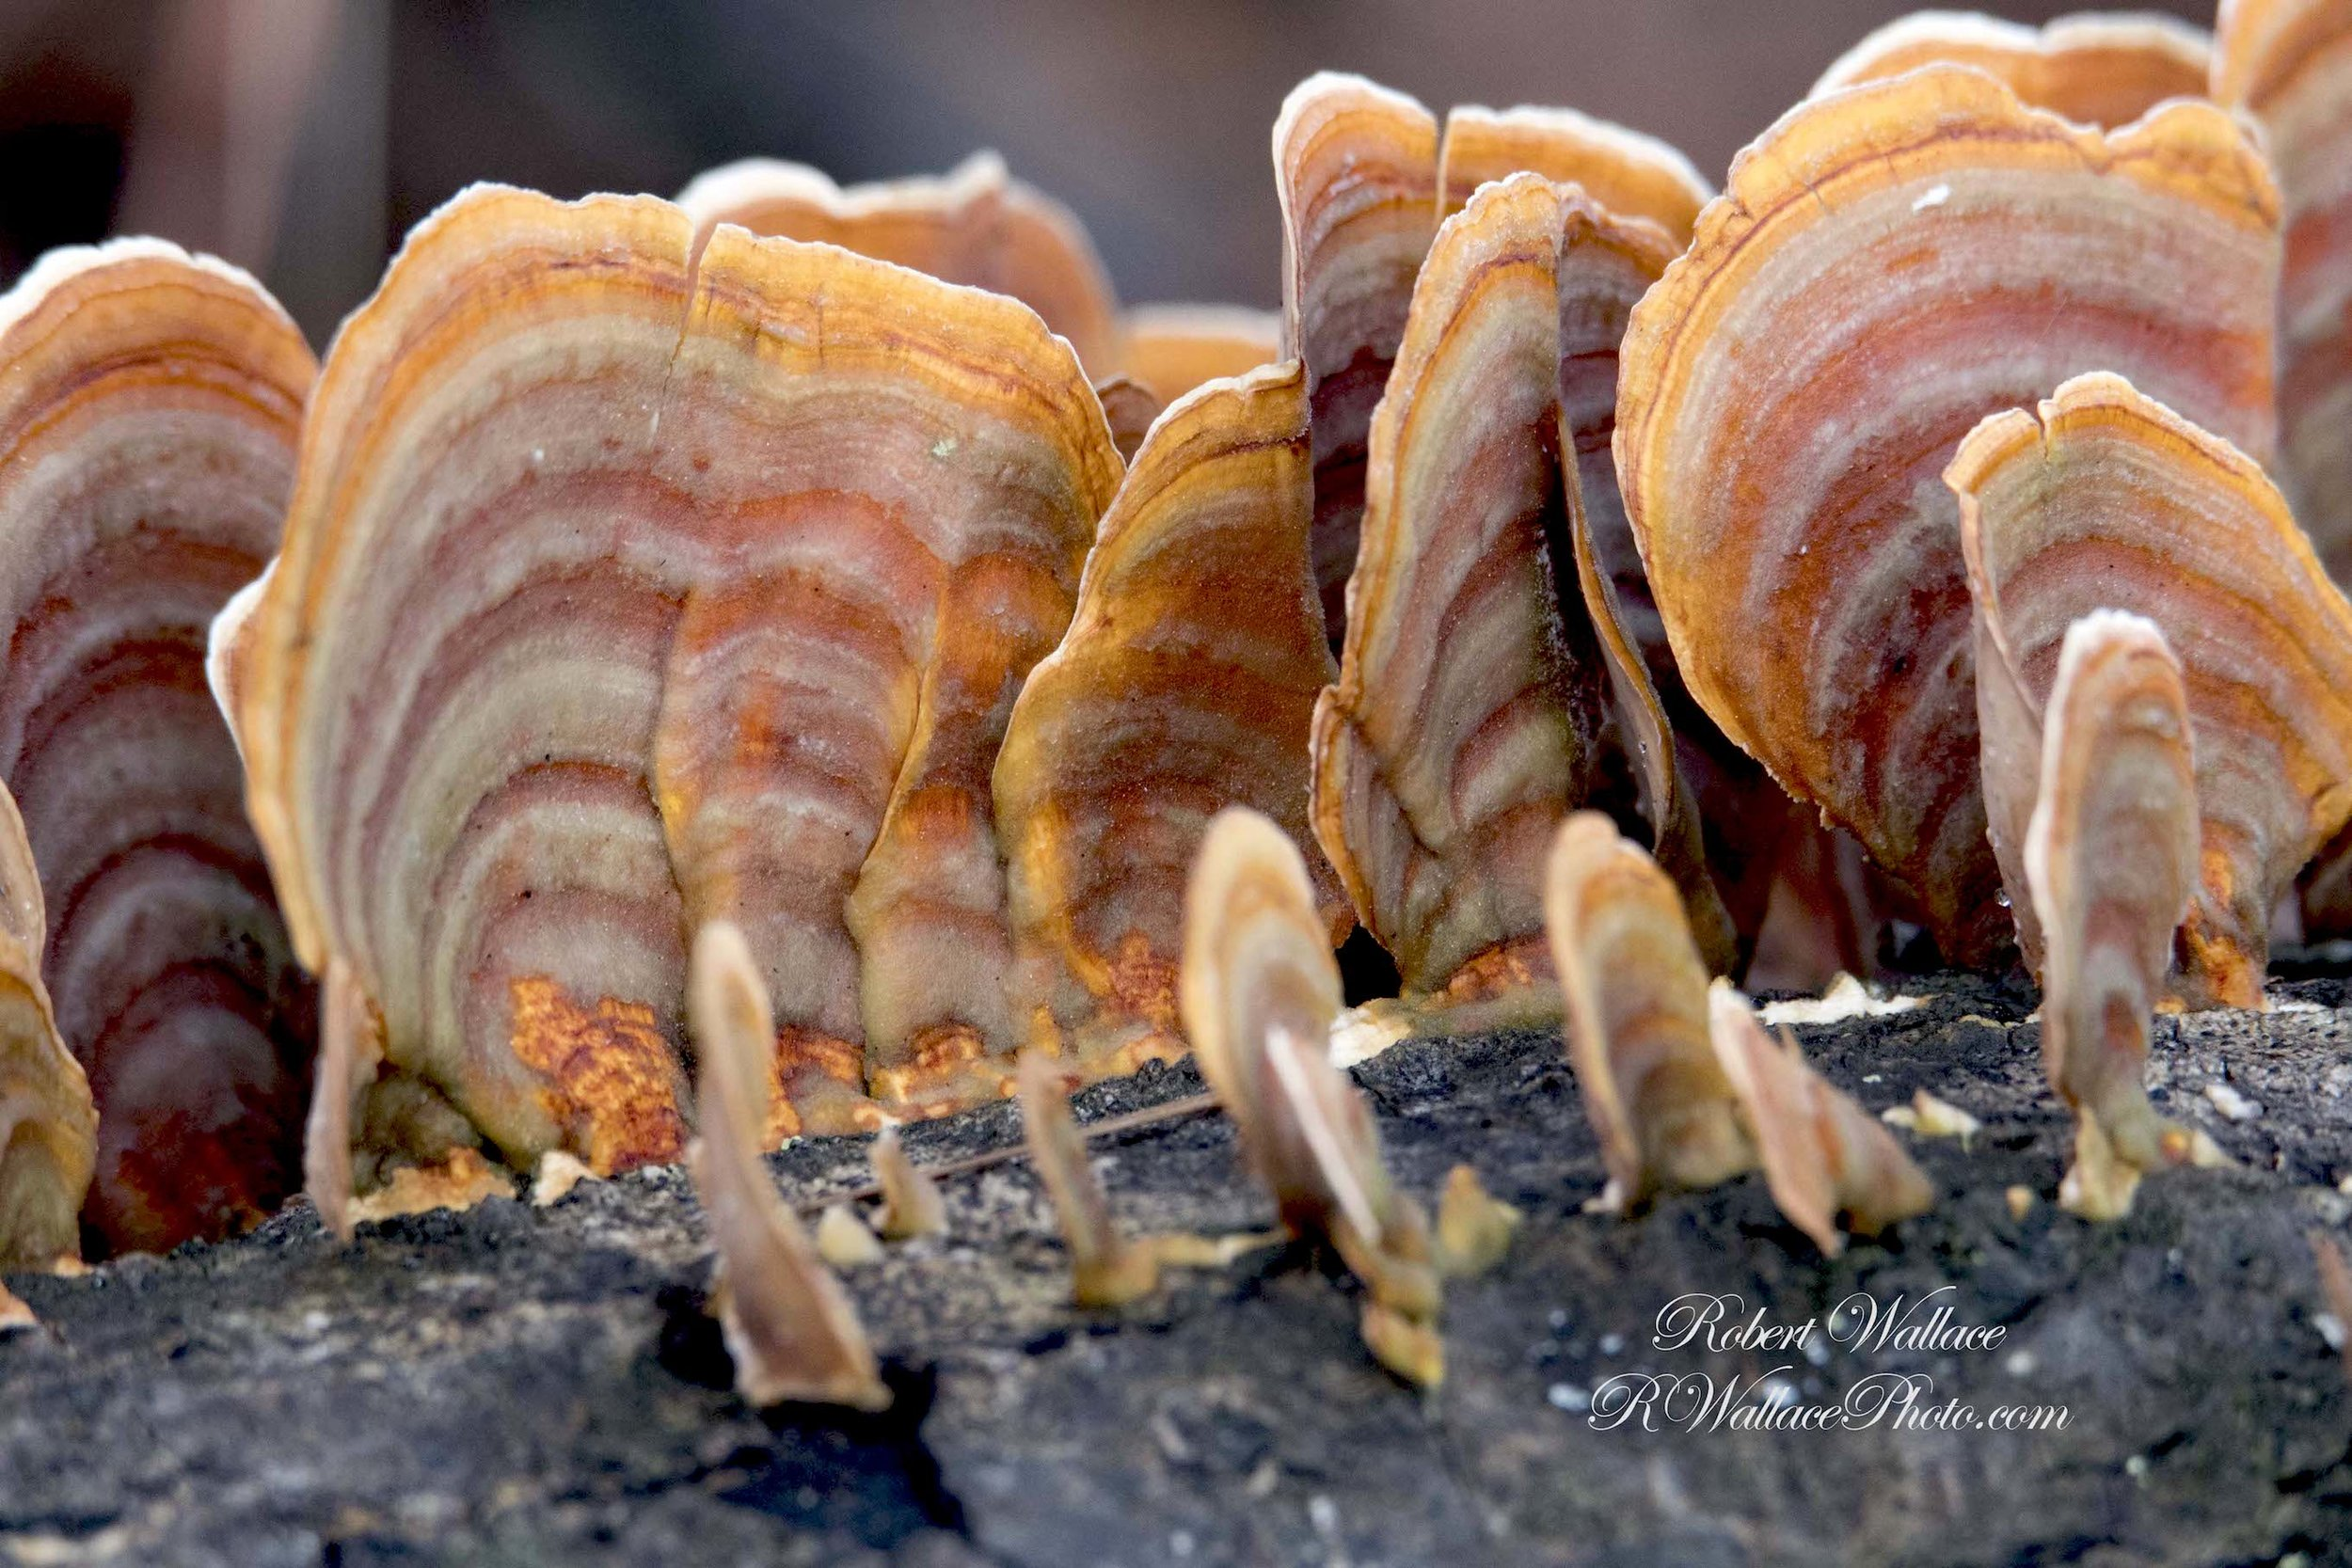 COLORFUL FUNGUS (A TURKEY TAIL FUNGUS?) GROWING ON A FALLEN TREE AT RAINBOW SPRINGS STATE PARK. IMAGE: ©ROBERT WALLACE RWALLACE PHOTO.